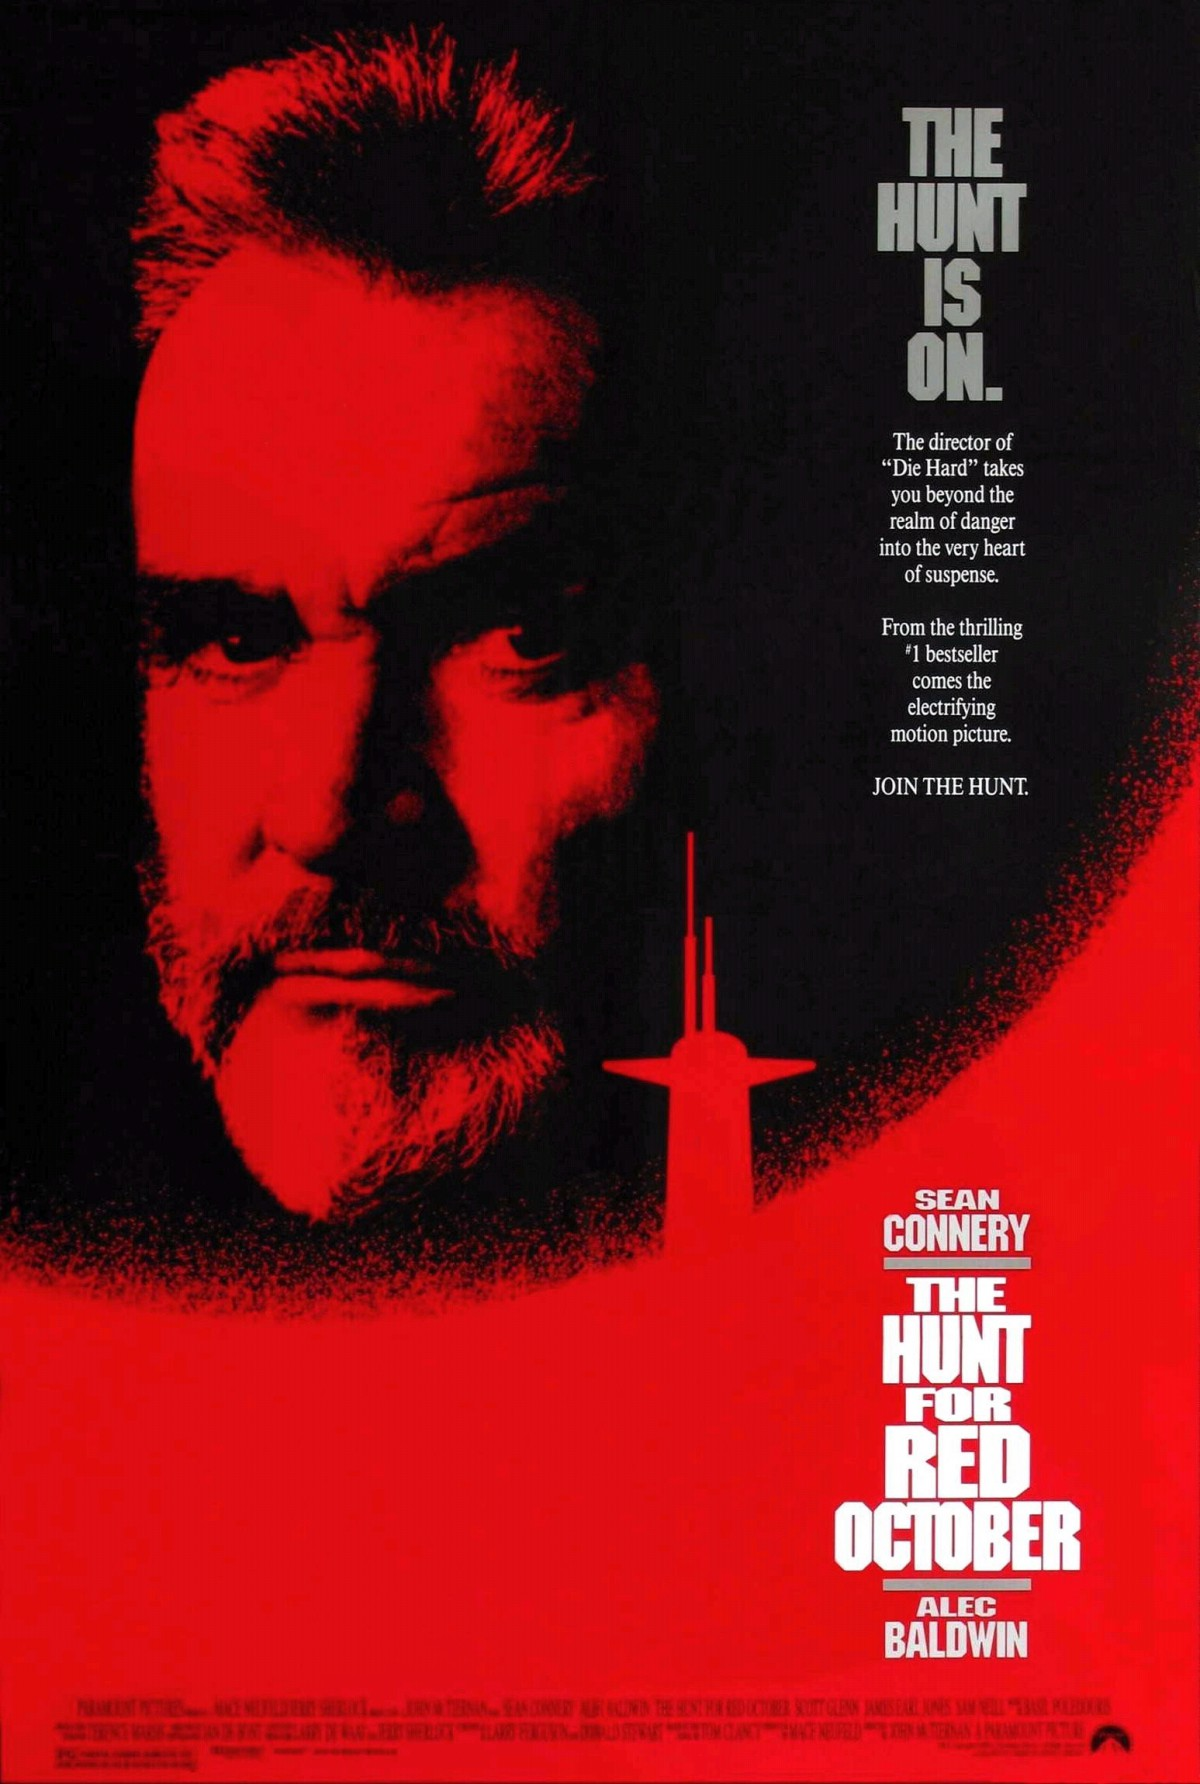 56. The Hunt for Red October (1990)